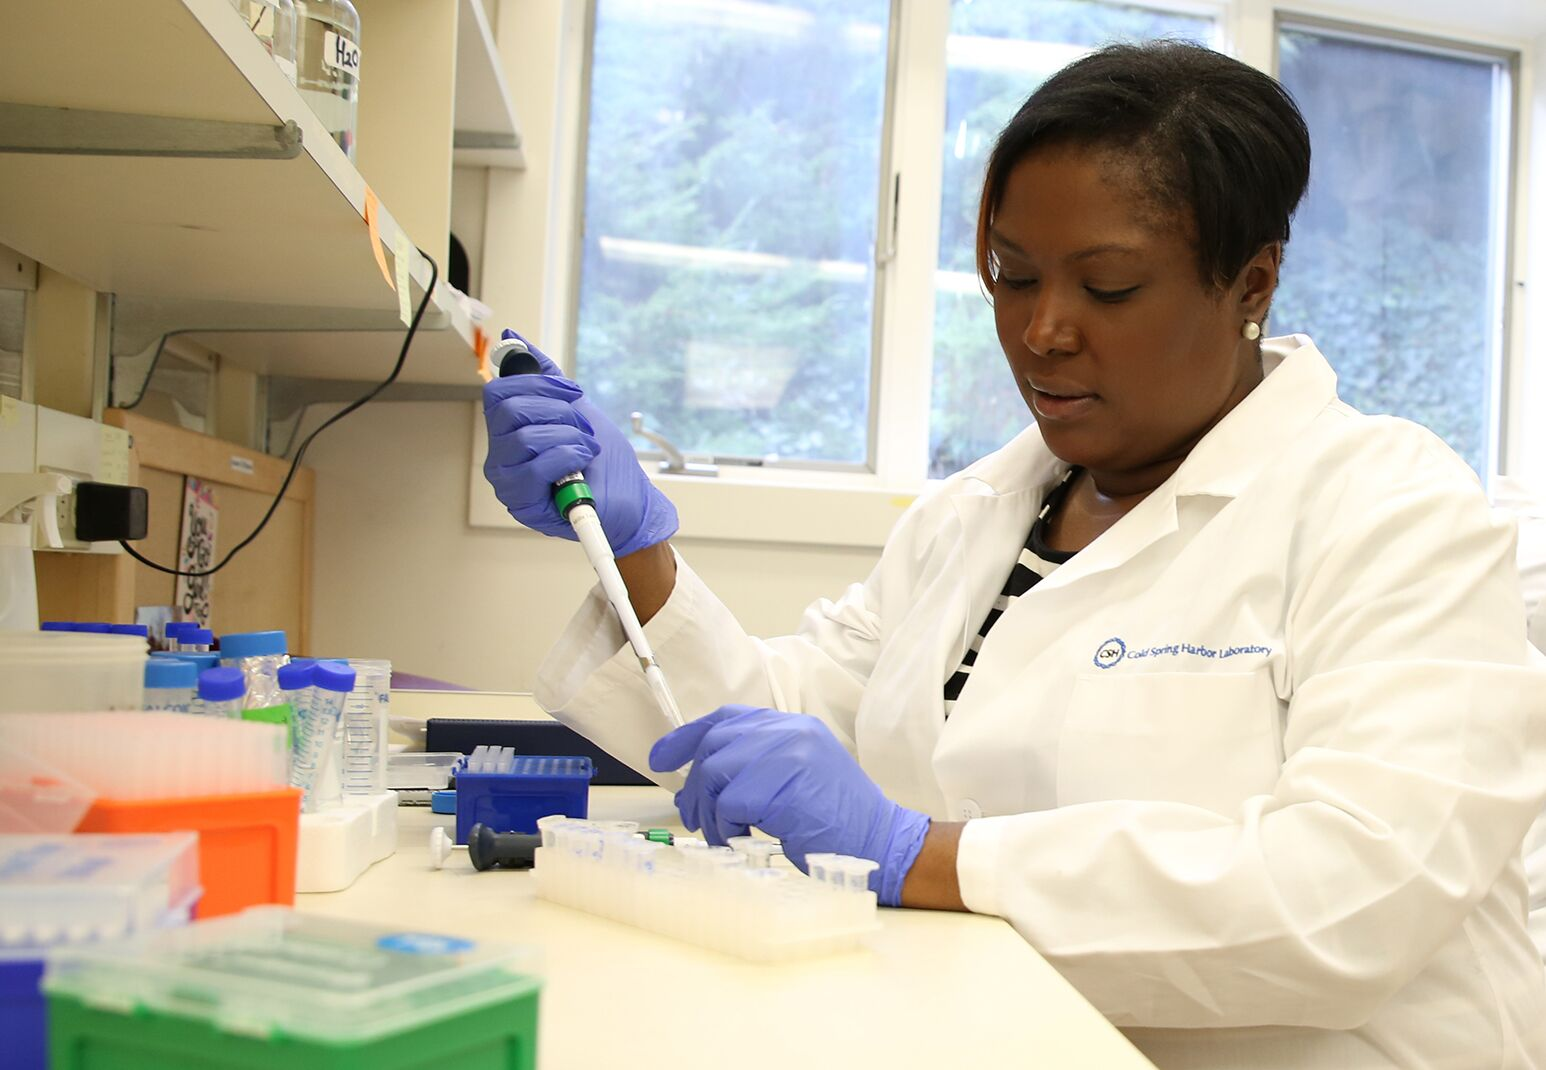 A researcher works with samples